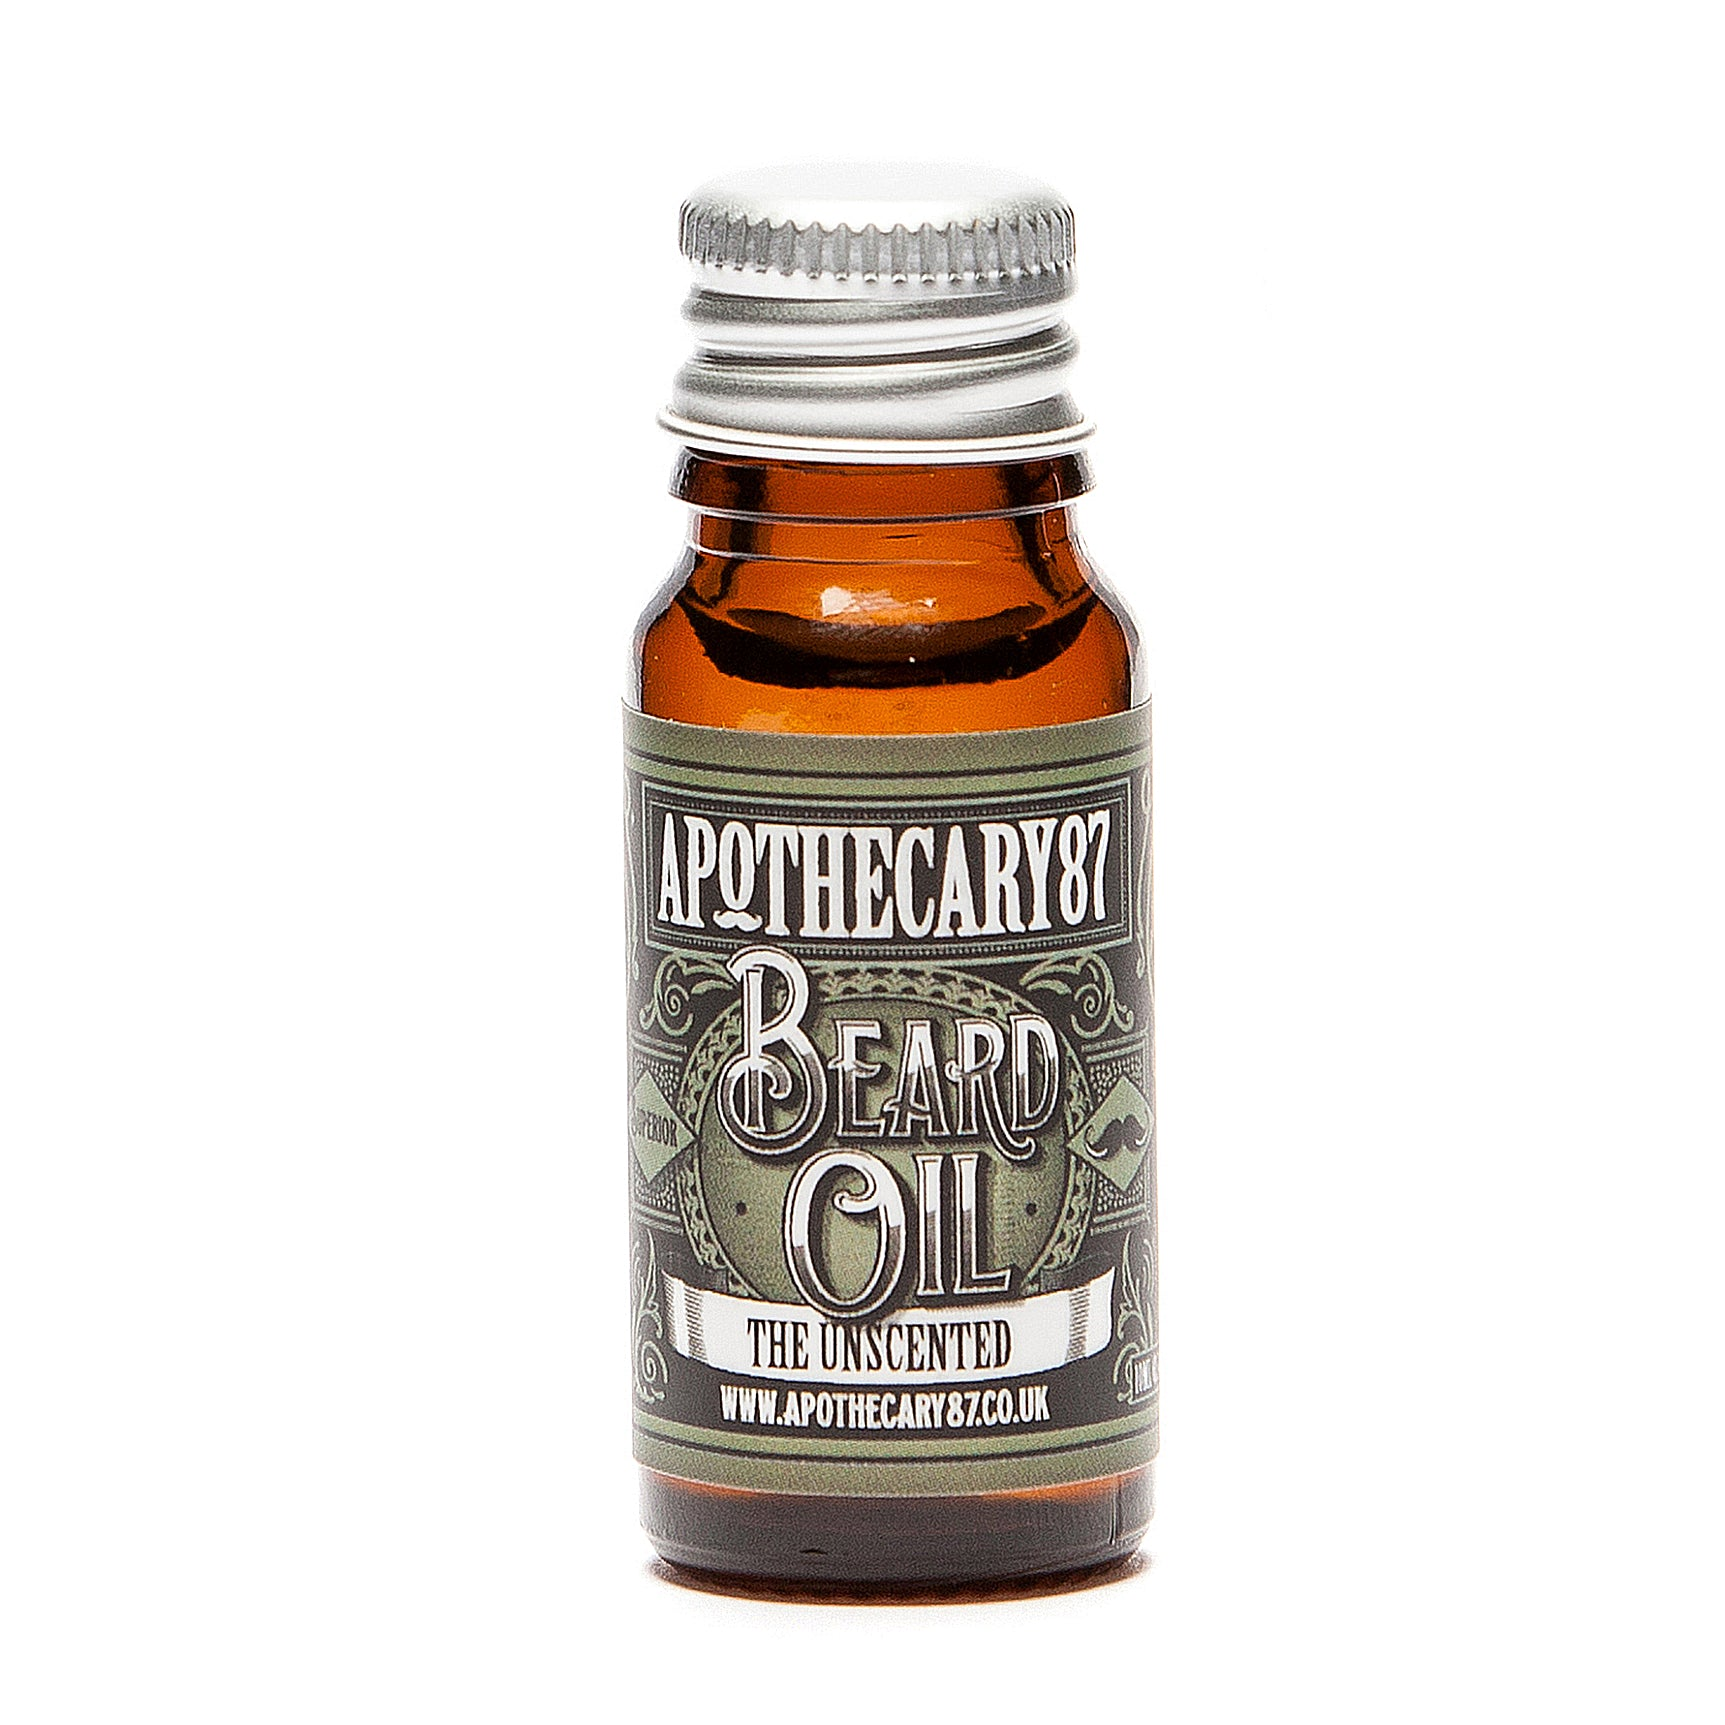 Apothecary87 Beard Oil The Unscented 10ml Bottle Front